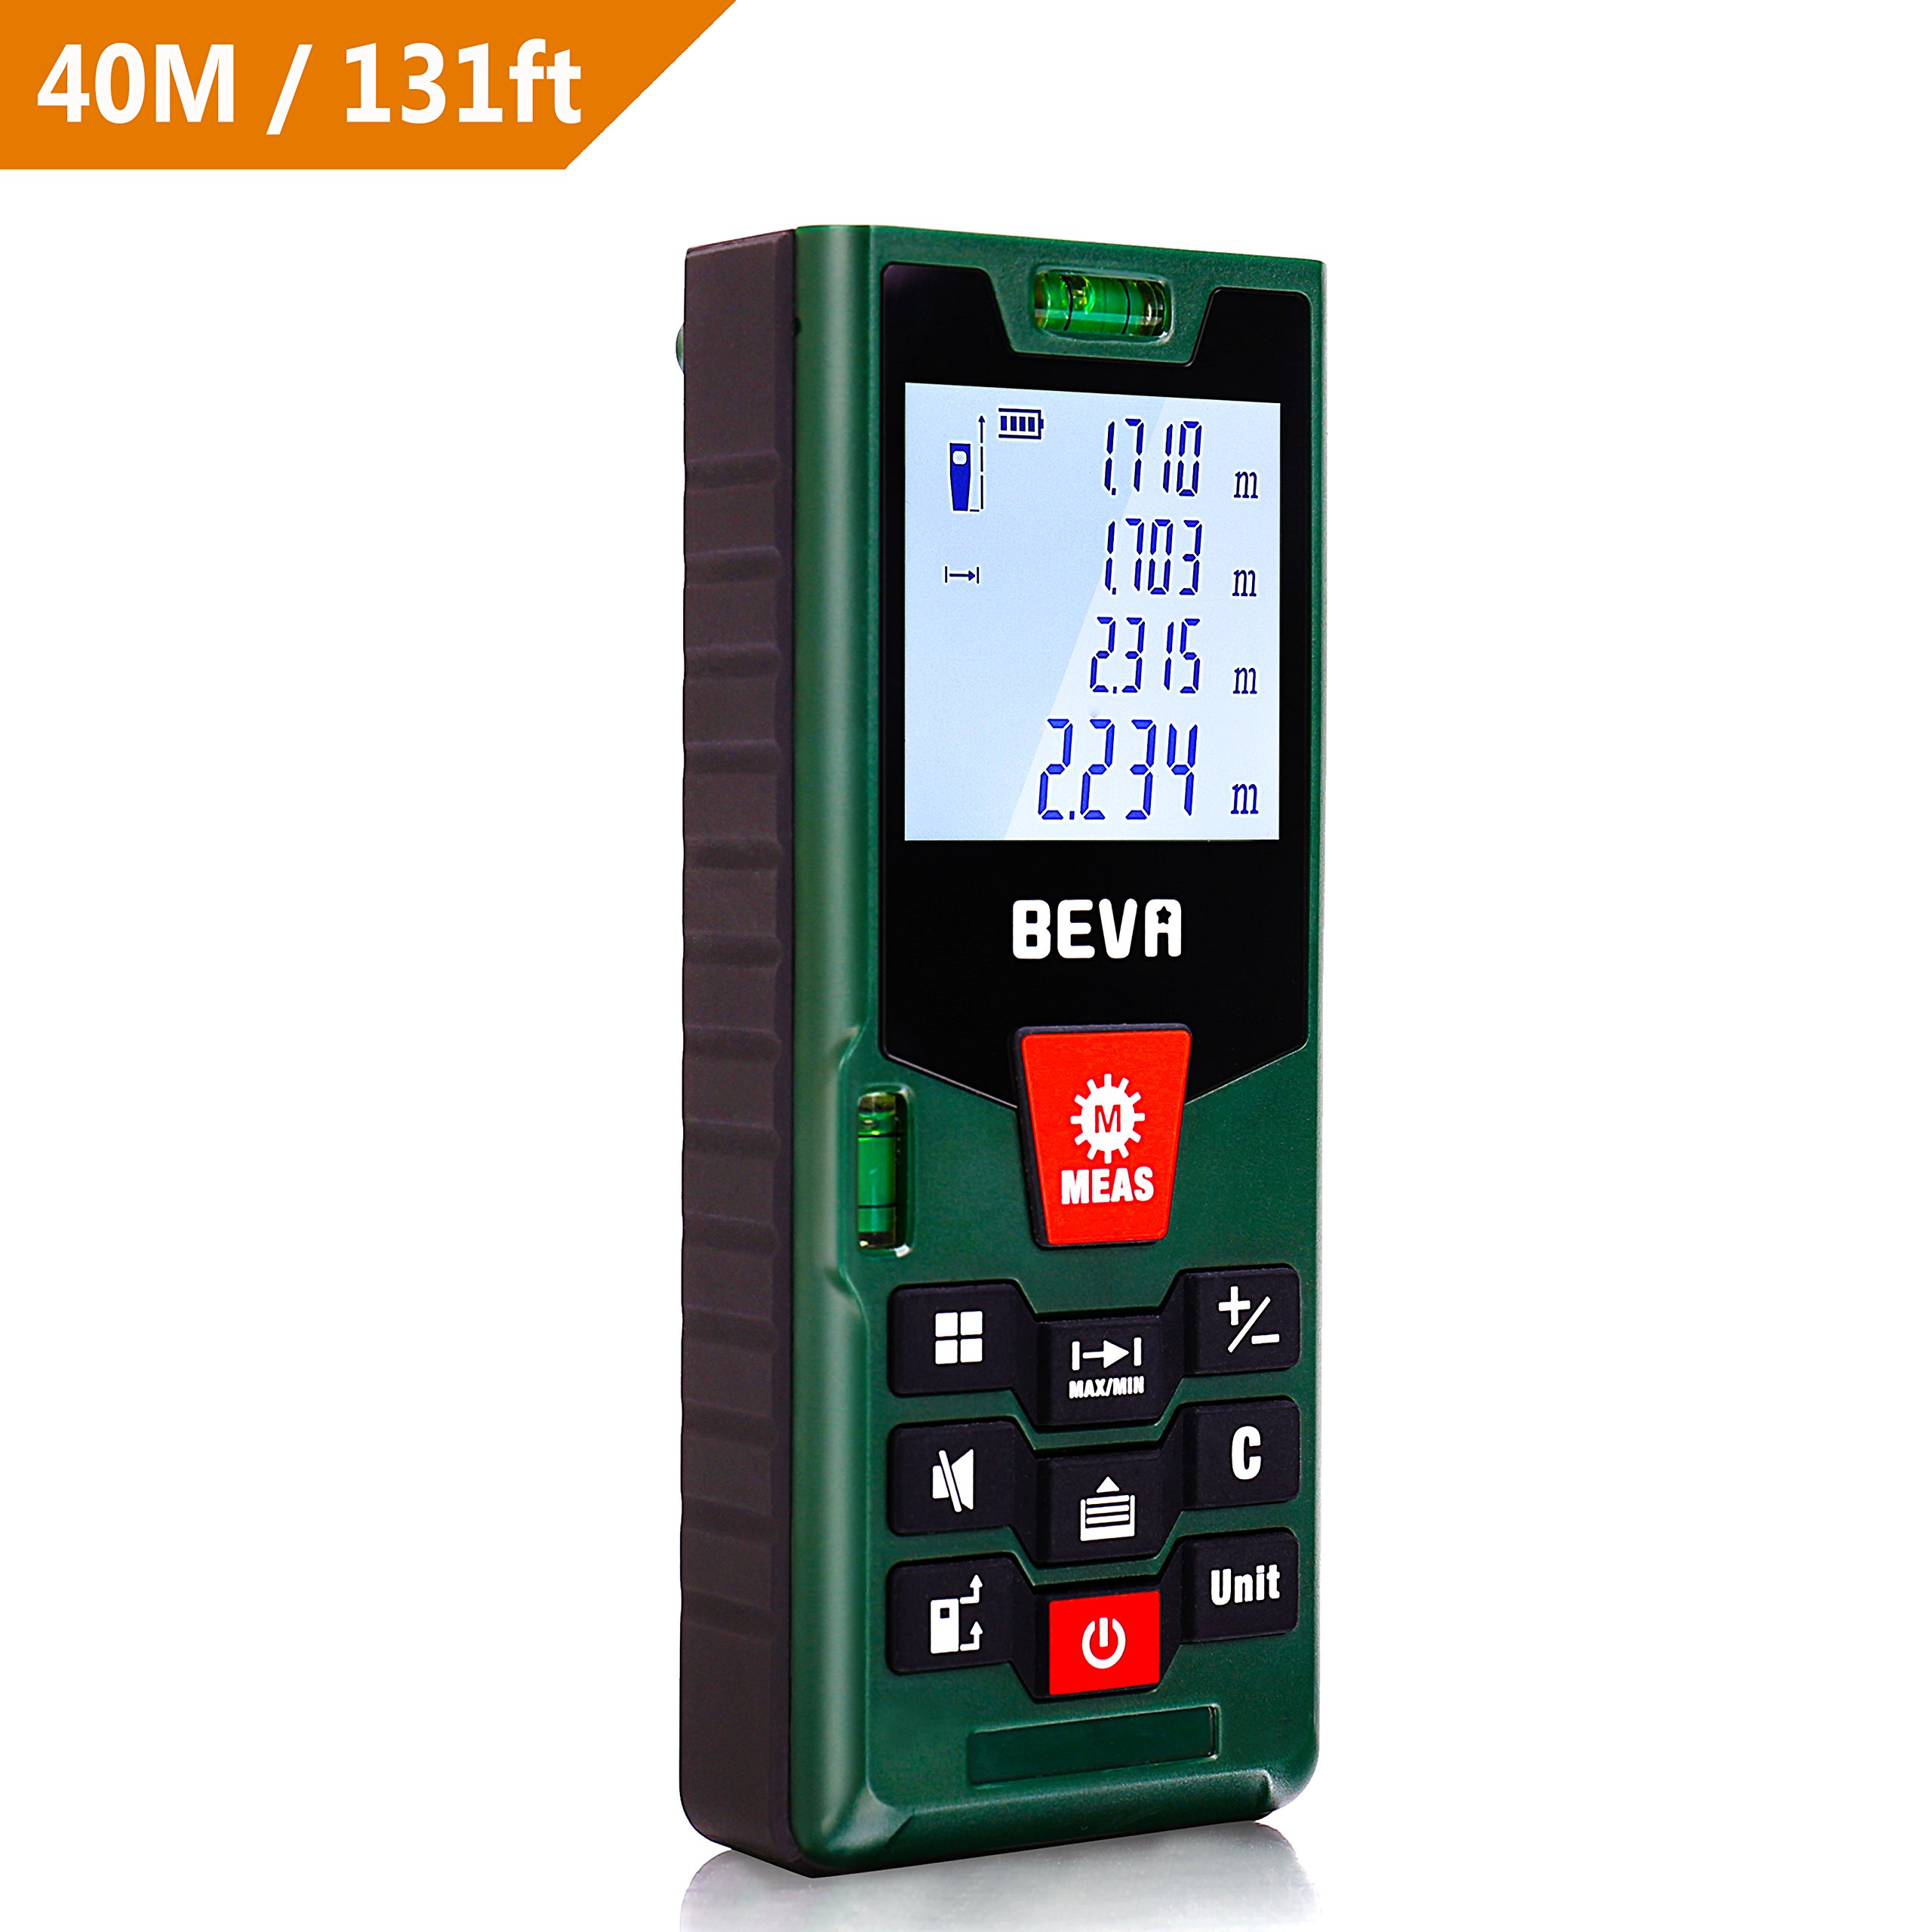 BEVA Laser Measure 131Ft M/In/Ft Digital Laser Tape measure with Mute Function Laser Measuring Device with Pythagorean Mode, Measure Distance, Area, Volume Calculation